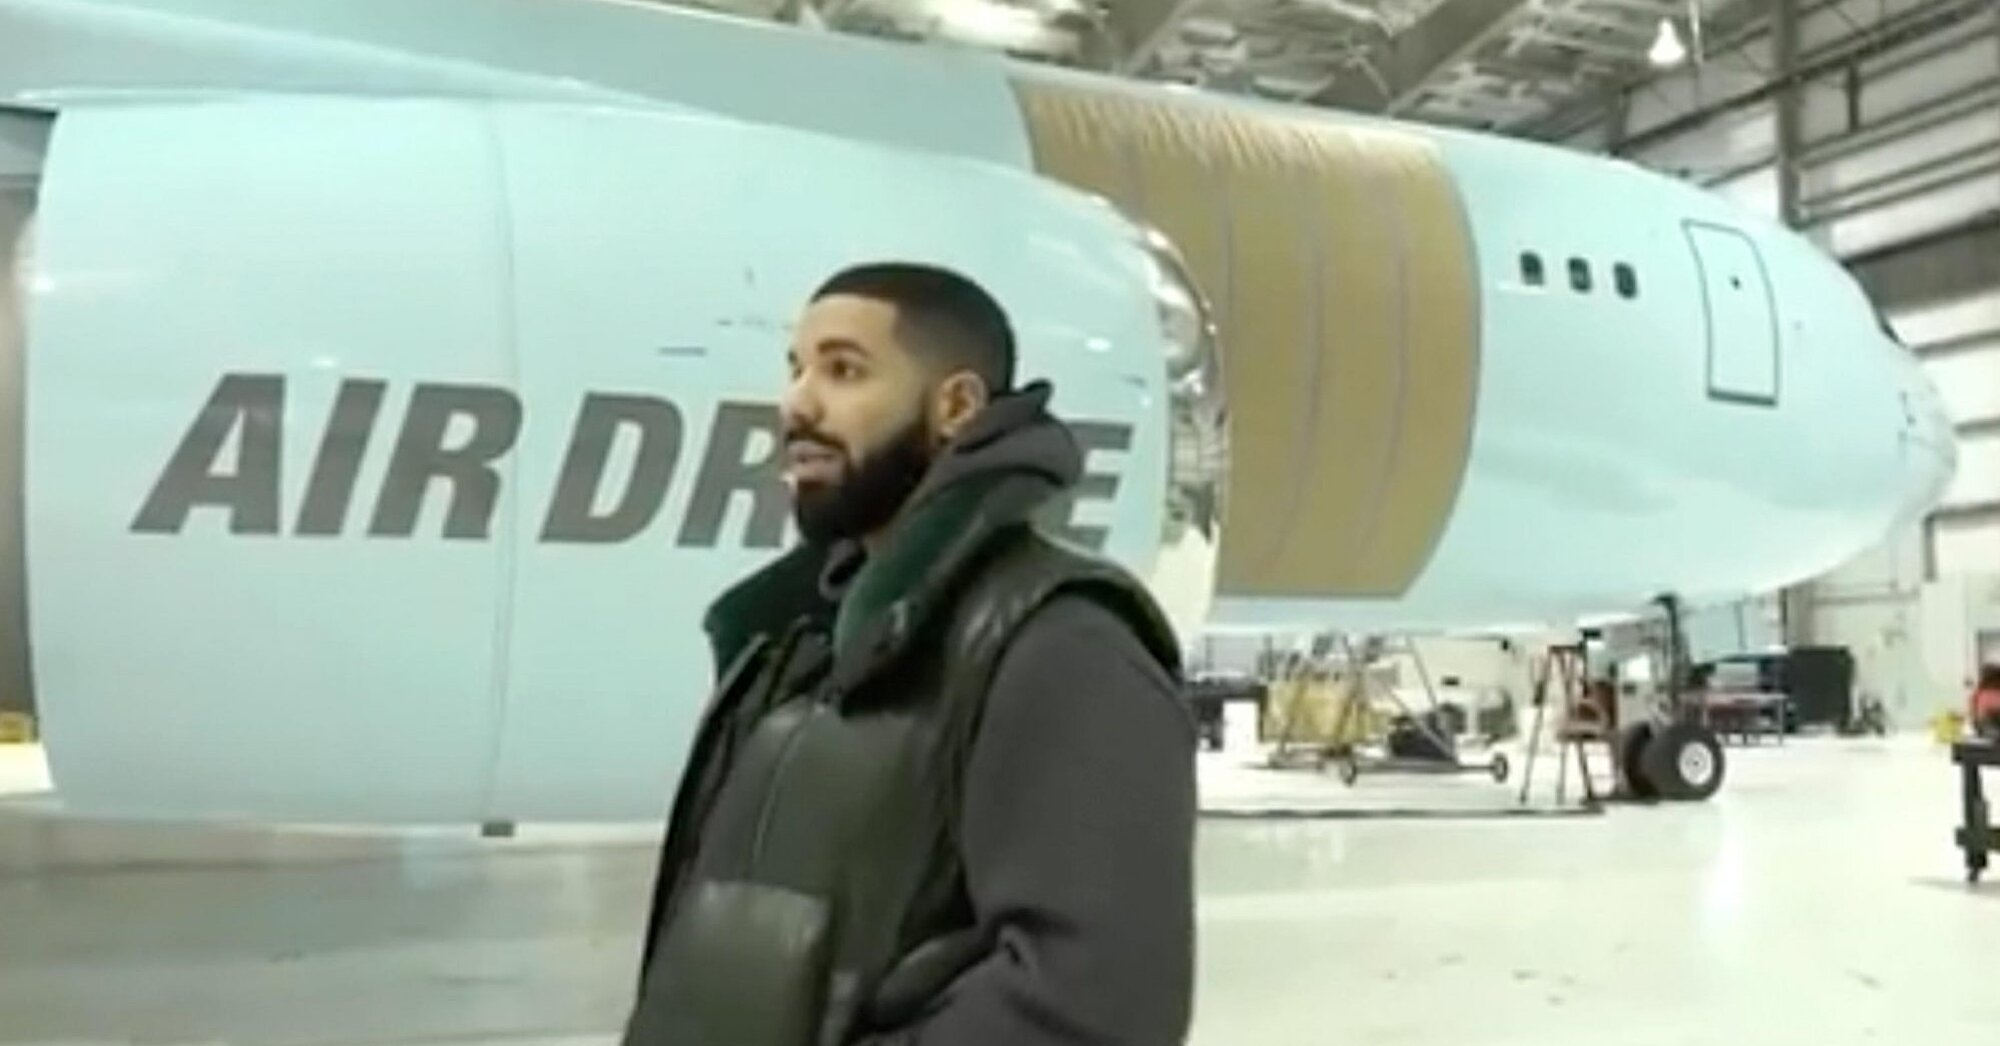 Drake Has Turned a Massive 767 Cargo Plane Into a $185 Million Flying Oasis Named 'Air Drake'